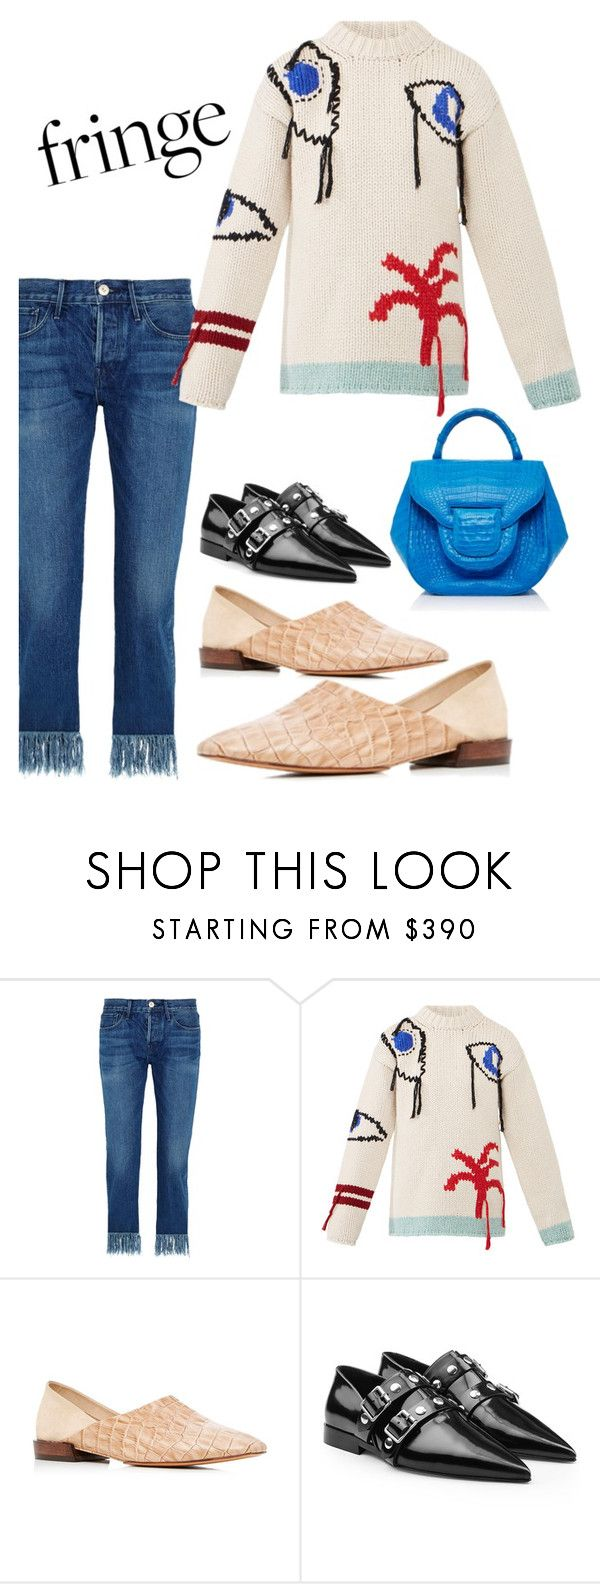 """""""Untitled #79"""" by qirong-wendy ❤ liked on Polyvore featuring 3x1, Joseph, Mari Giudicelli, Victoria Beckham and Nancy Gonzalez"""